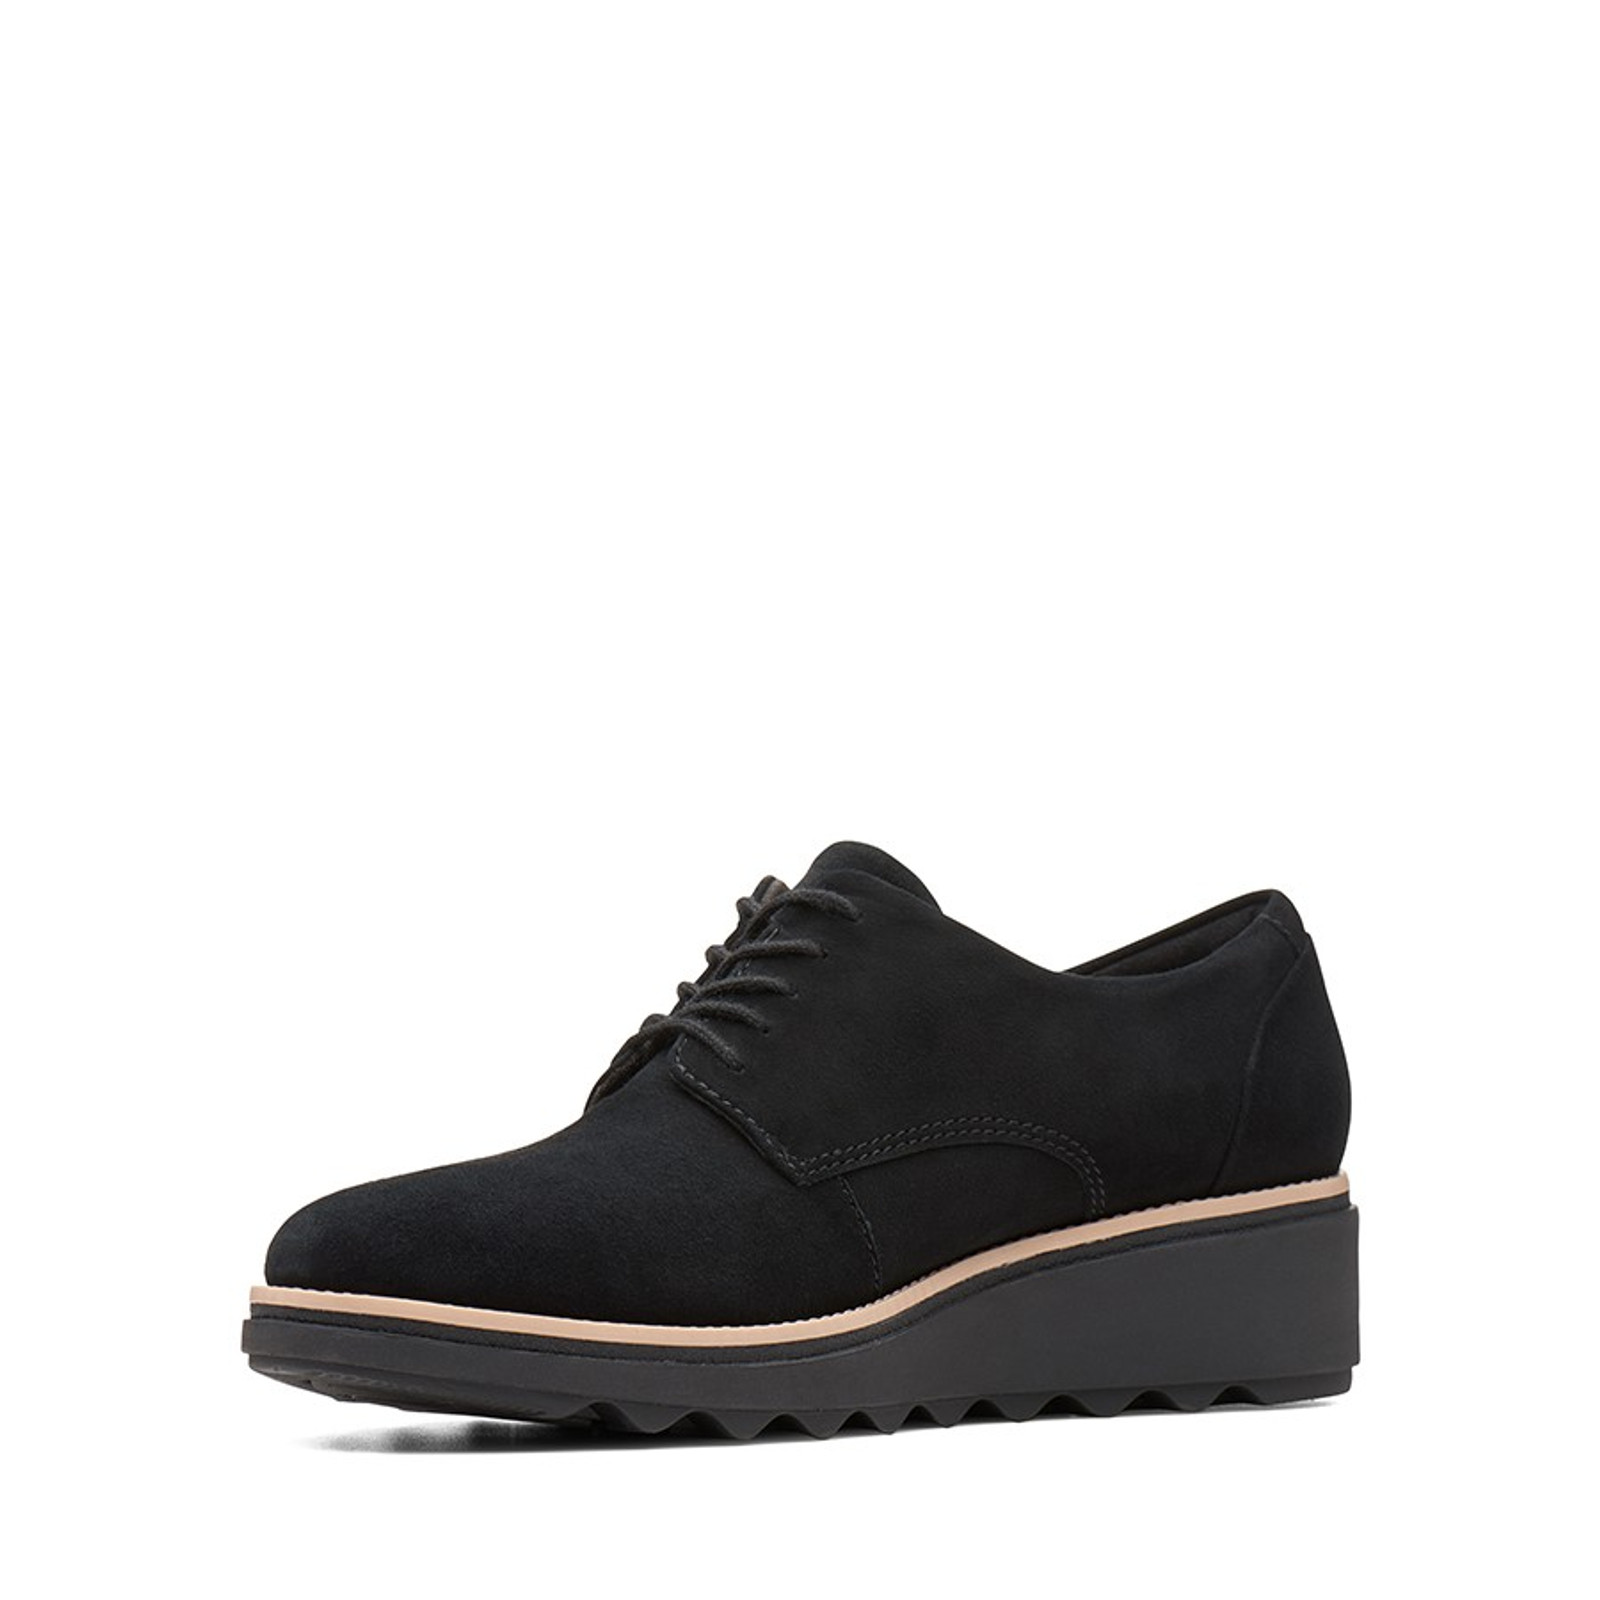 Clarks Womens SHARON NOEL Black Nubuck